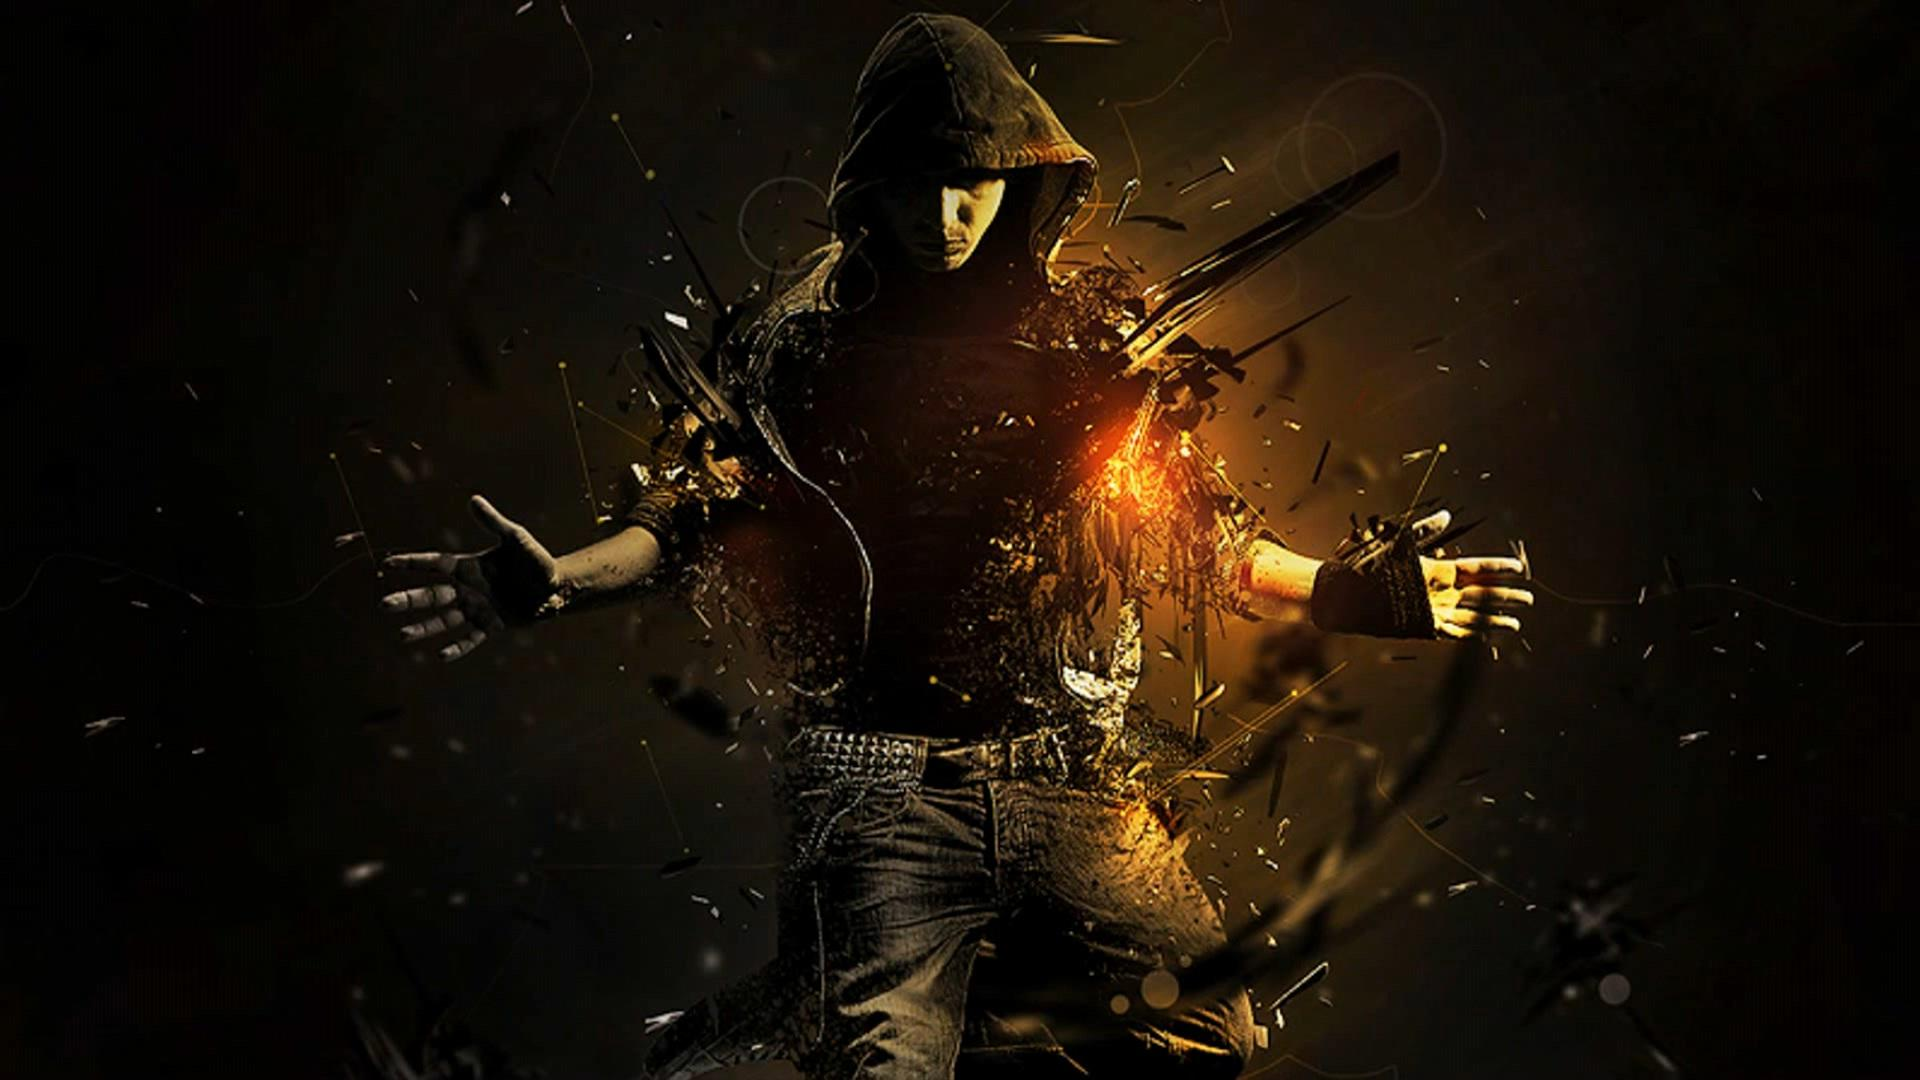 Cool HD Wallpapers For Boys 1920x1080